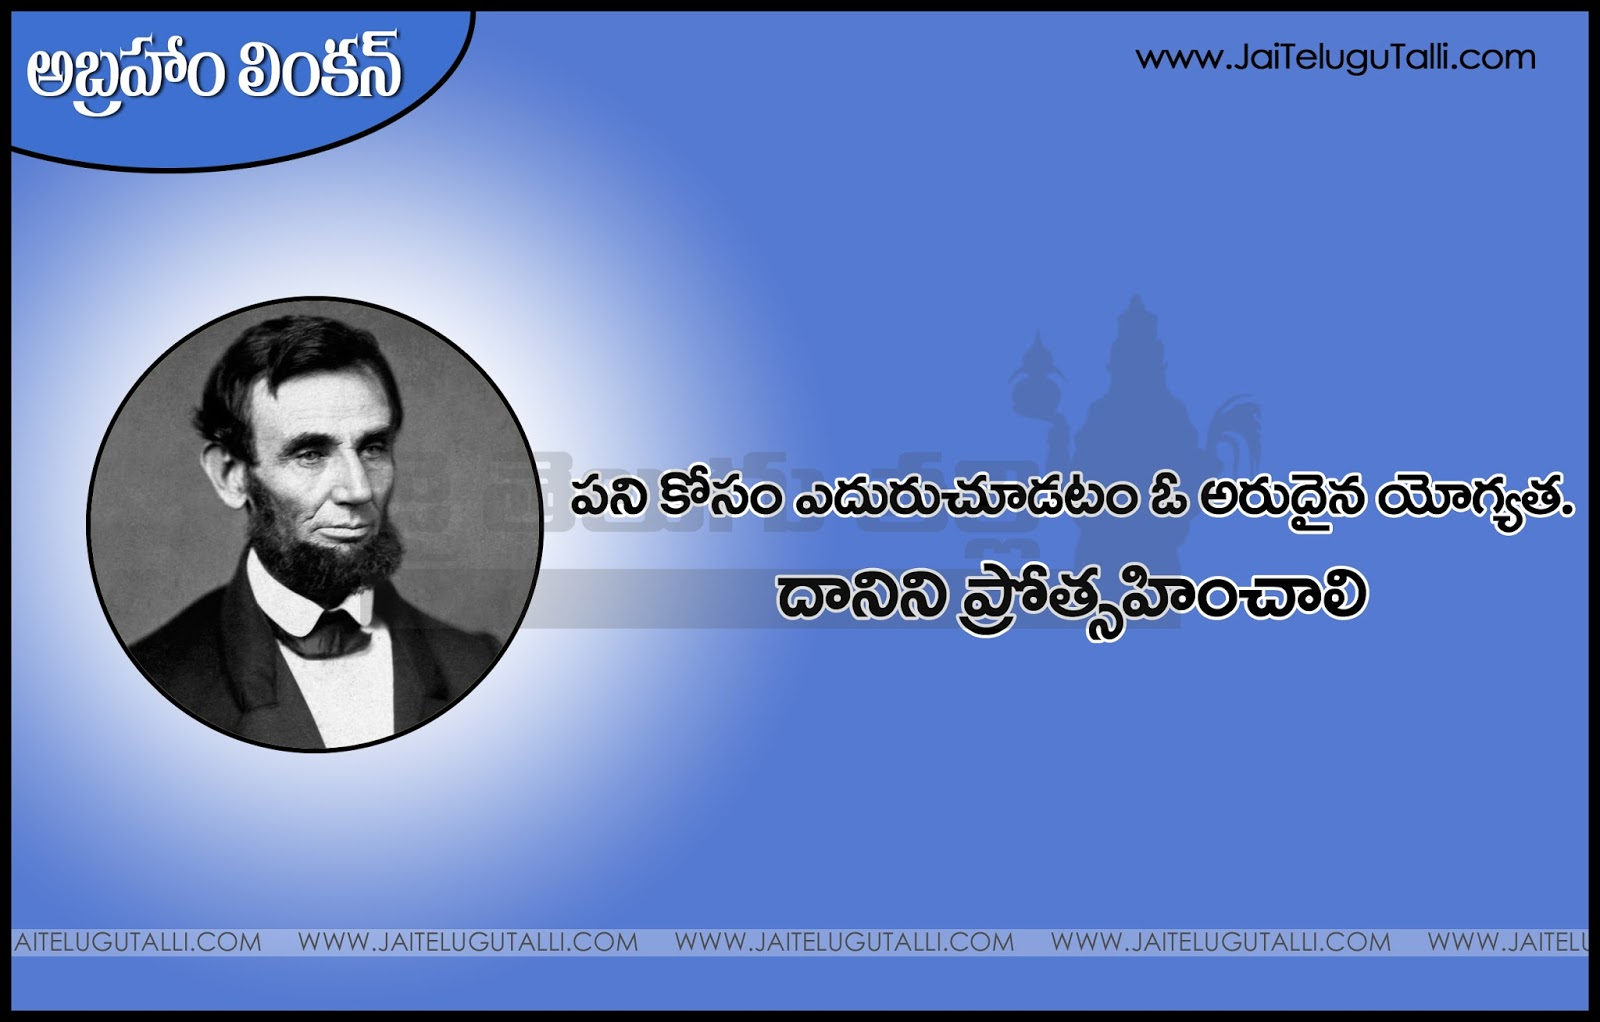 Abe Lincoln Quotes On Life Best Inspirational Telugu Quotesabraham Lincoln  Www